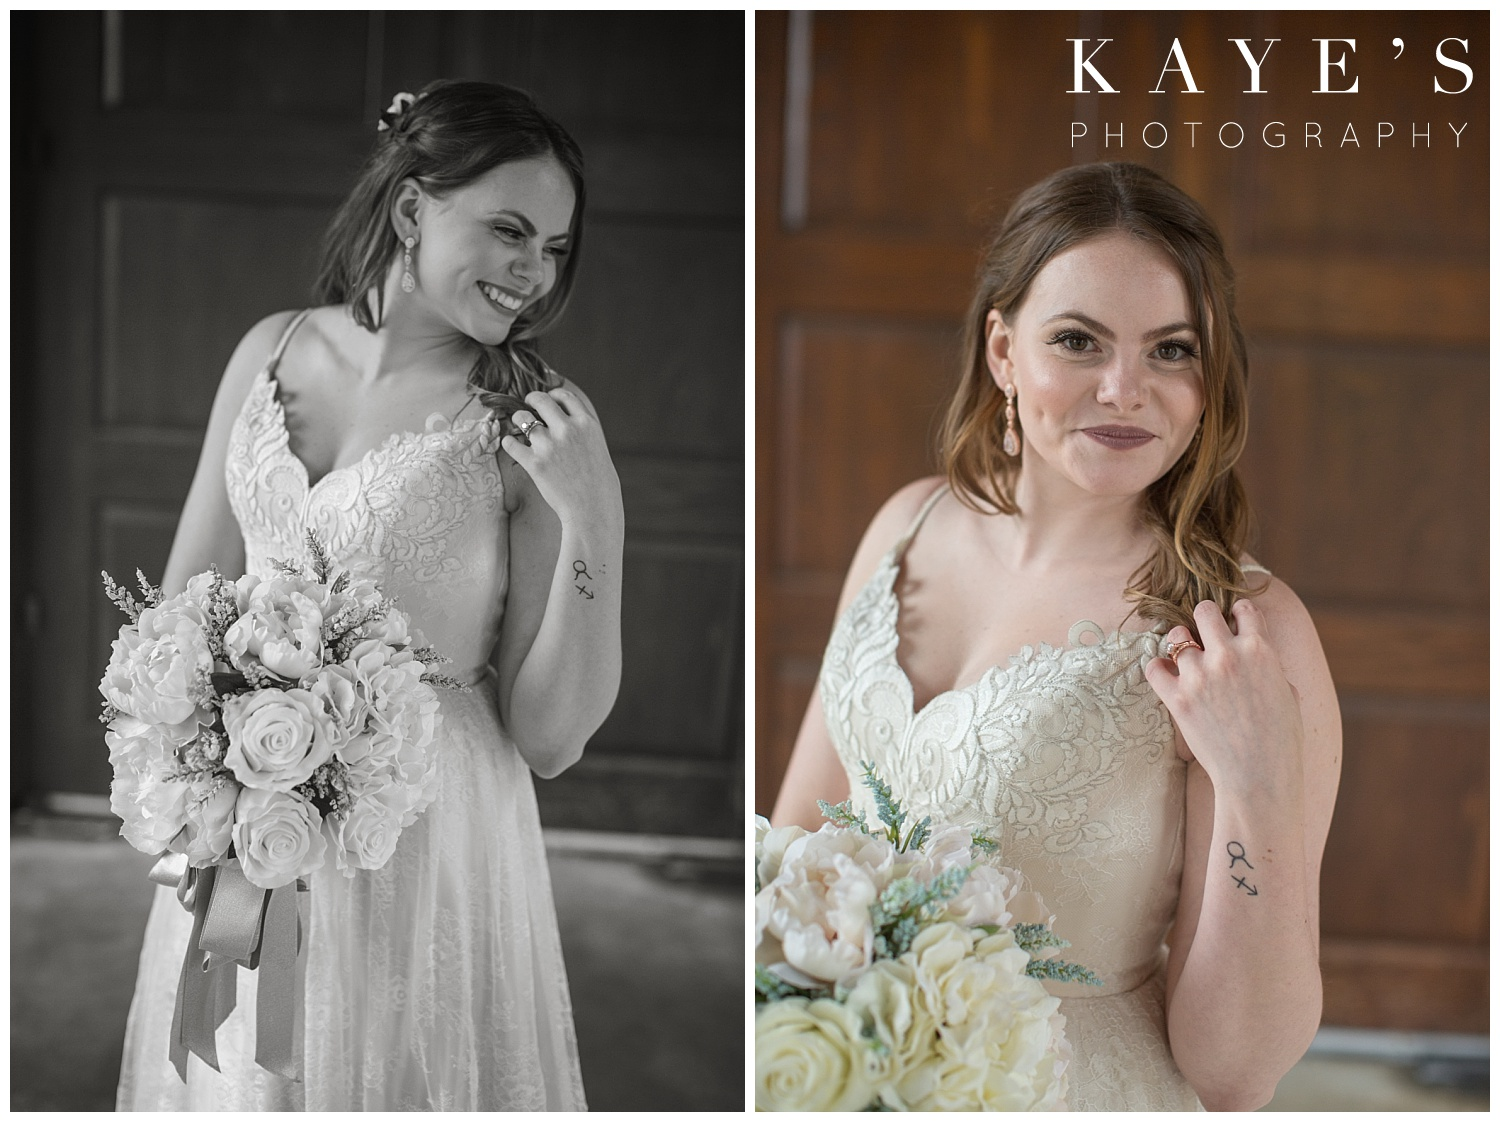 photos of the bride after ceremony at warwick hills in grand blanc